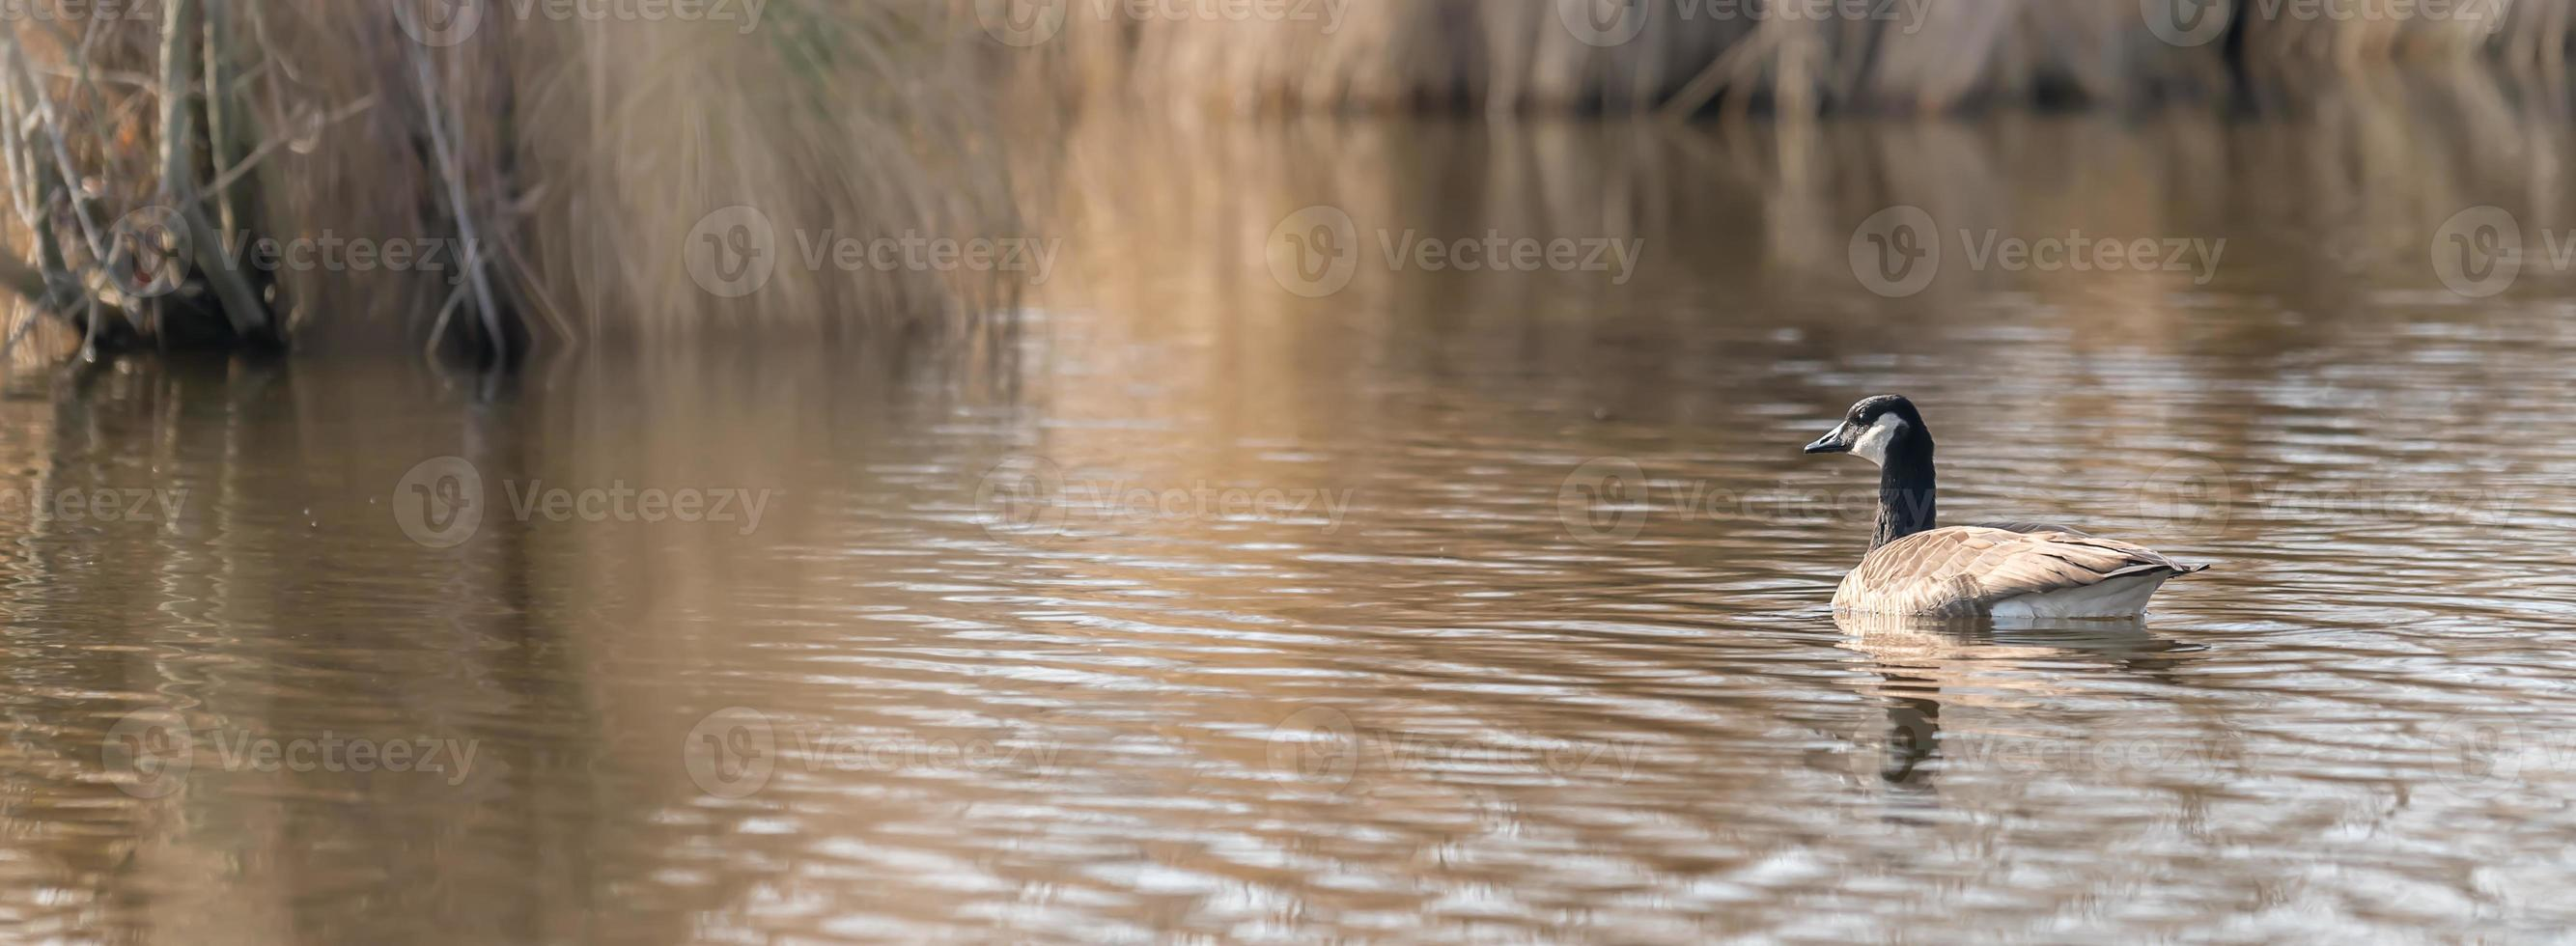 Canadian goose in water photo